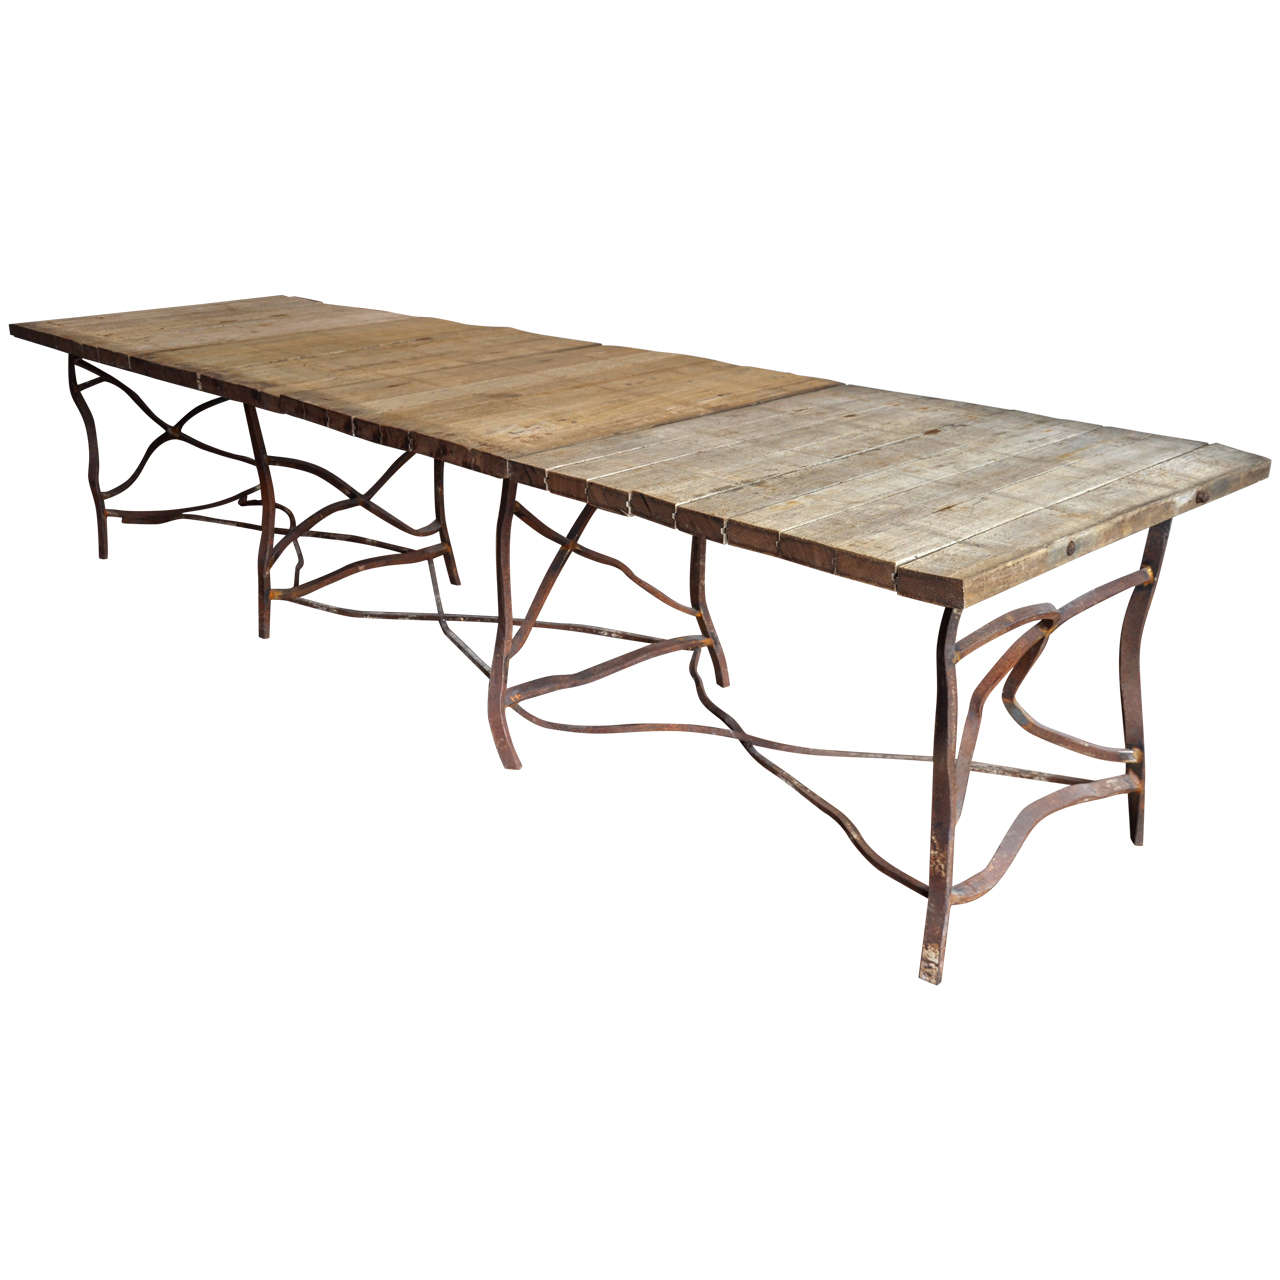 extra long rusty base french table at 1stdibs. Black Bedroom Furniture Sets. Home Design Ideas